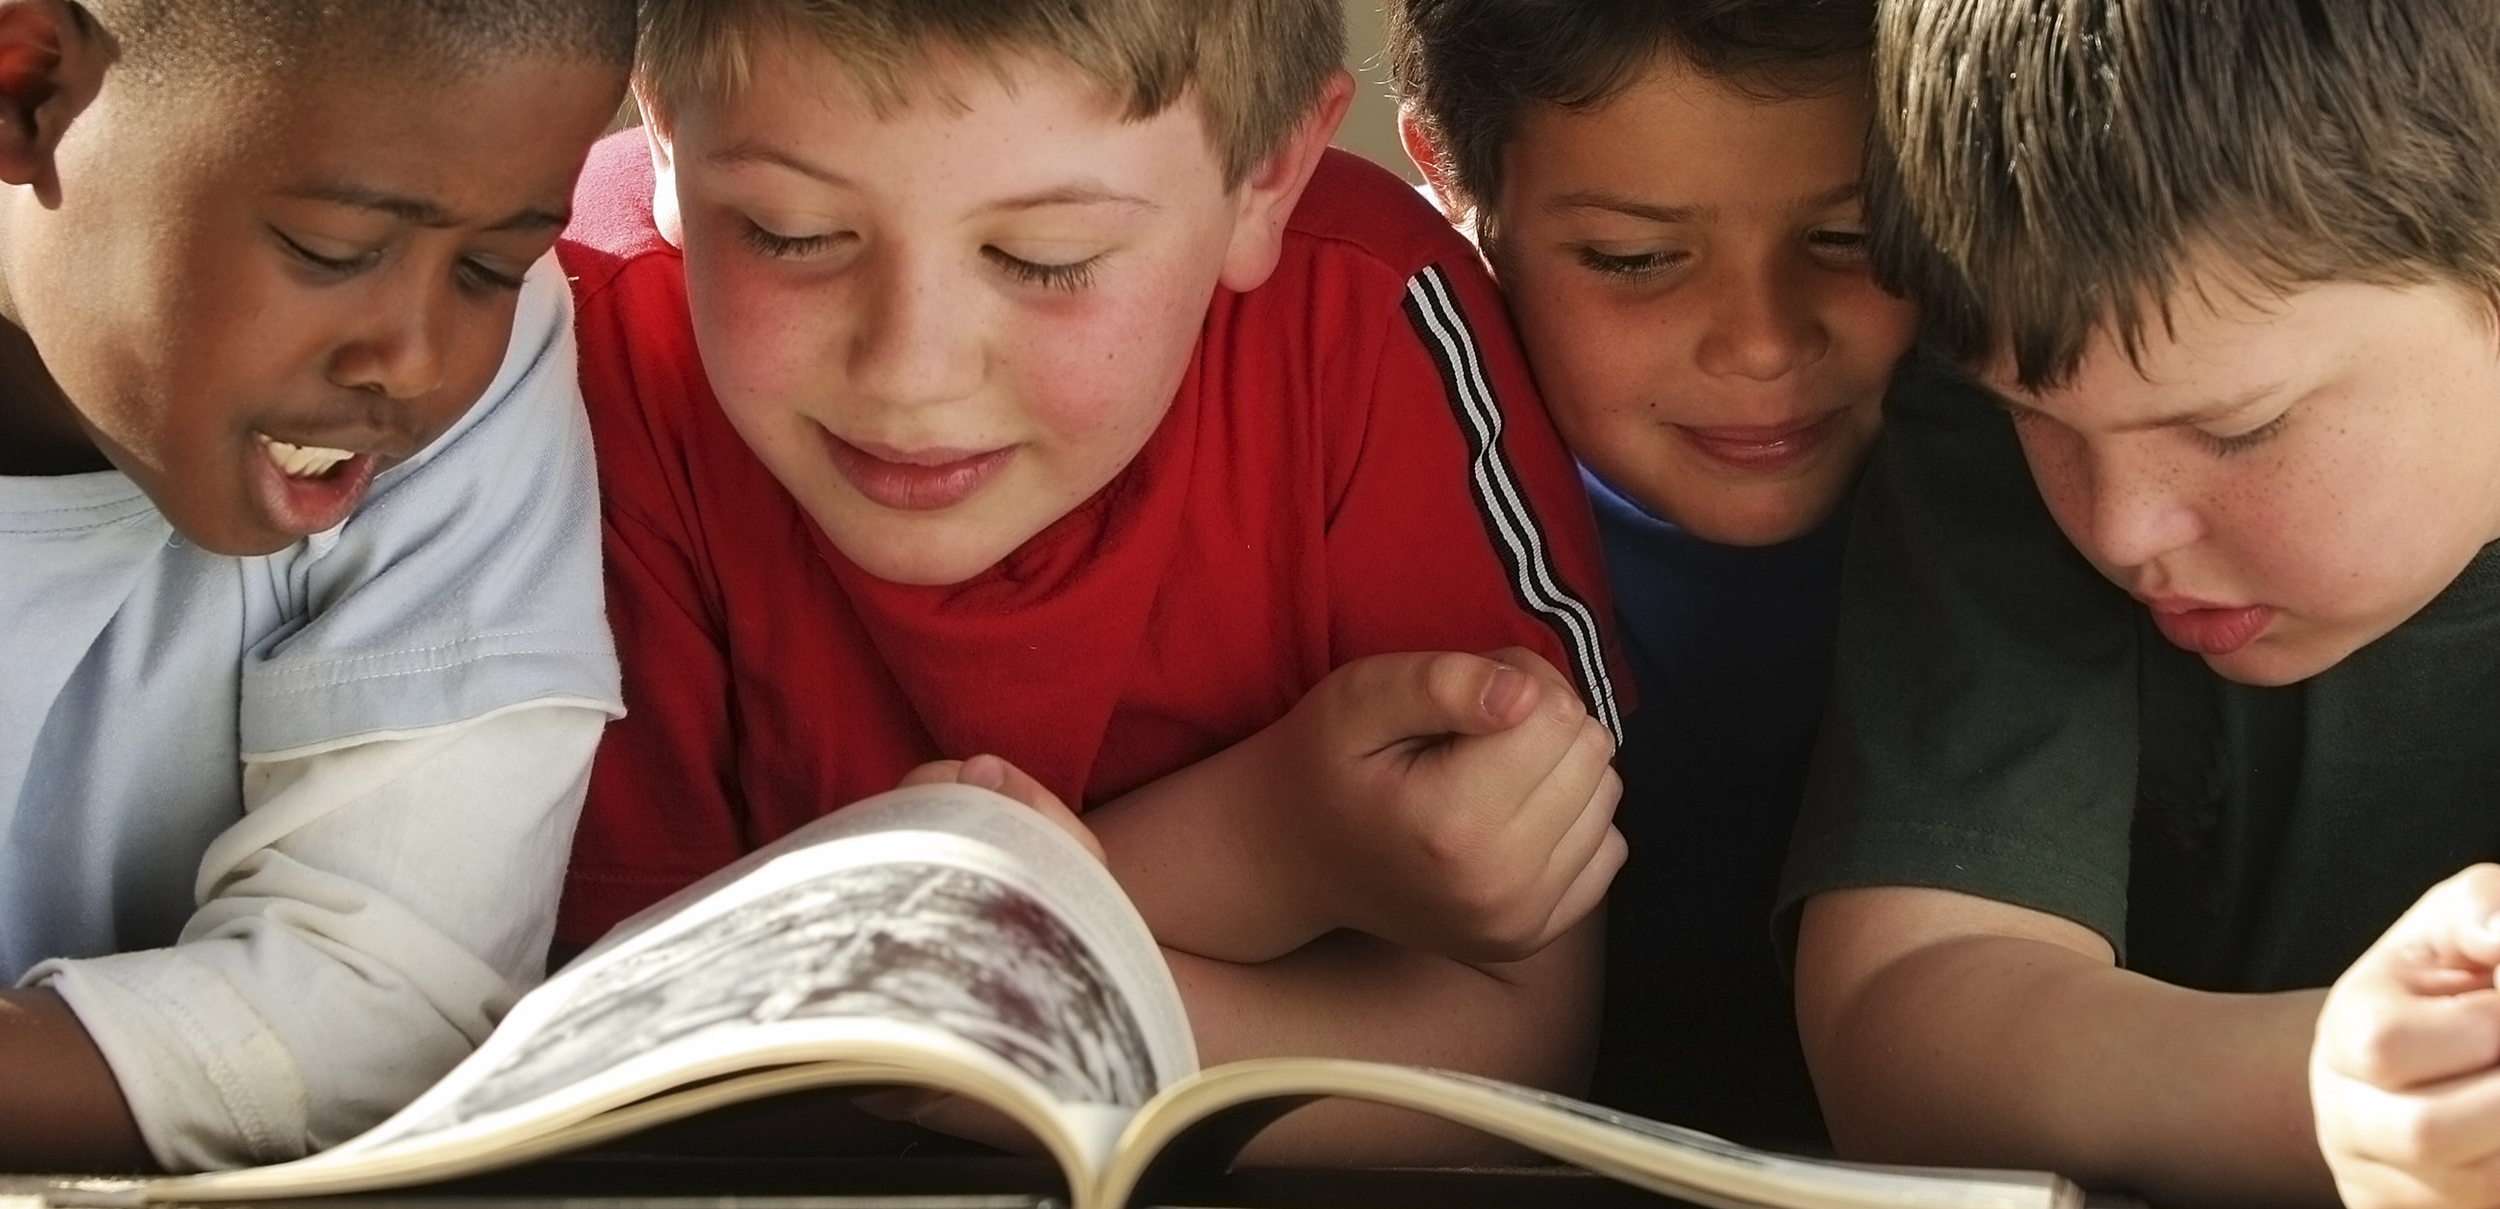 Boys reading together